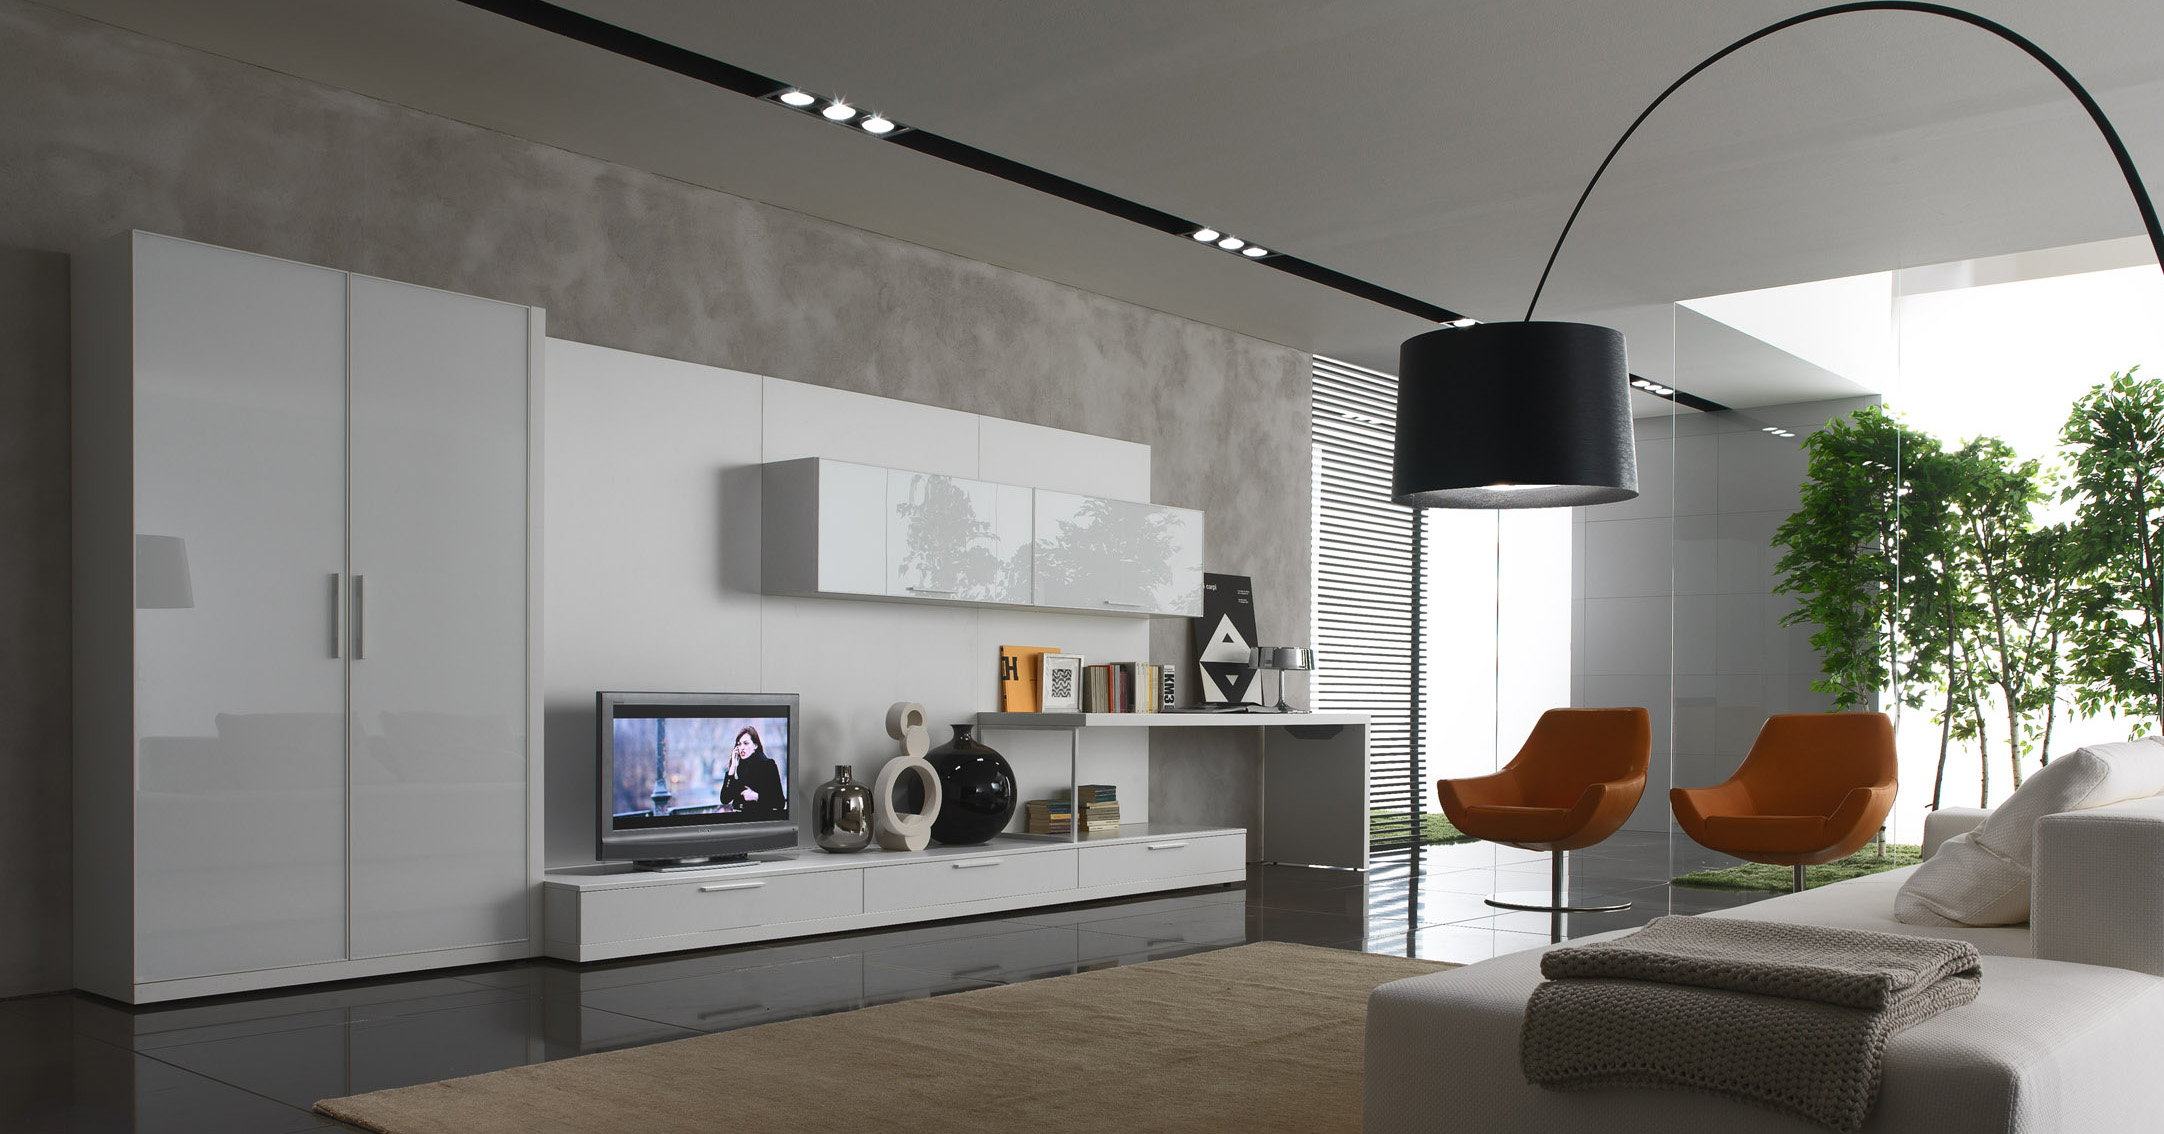 Impressive Modern Living Room 2164 x 1134 · 481 kB · jpeg